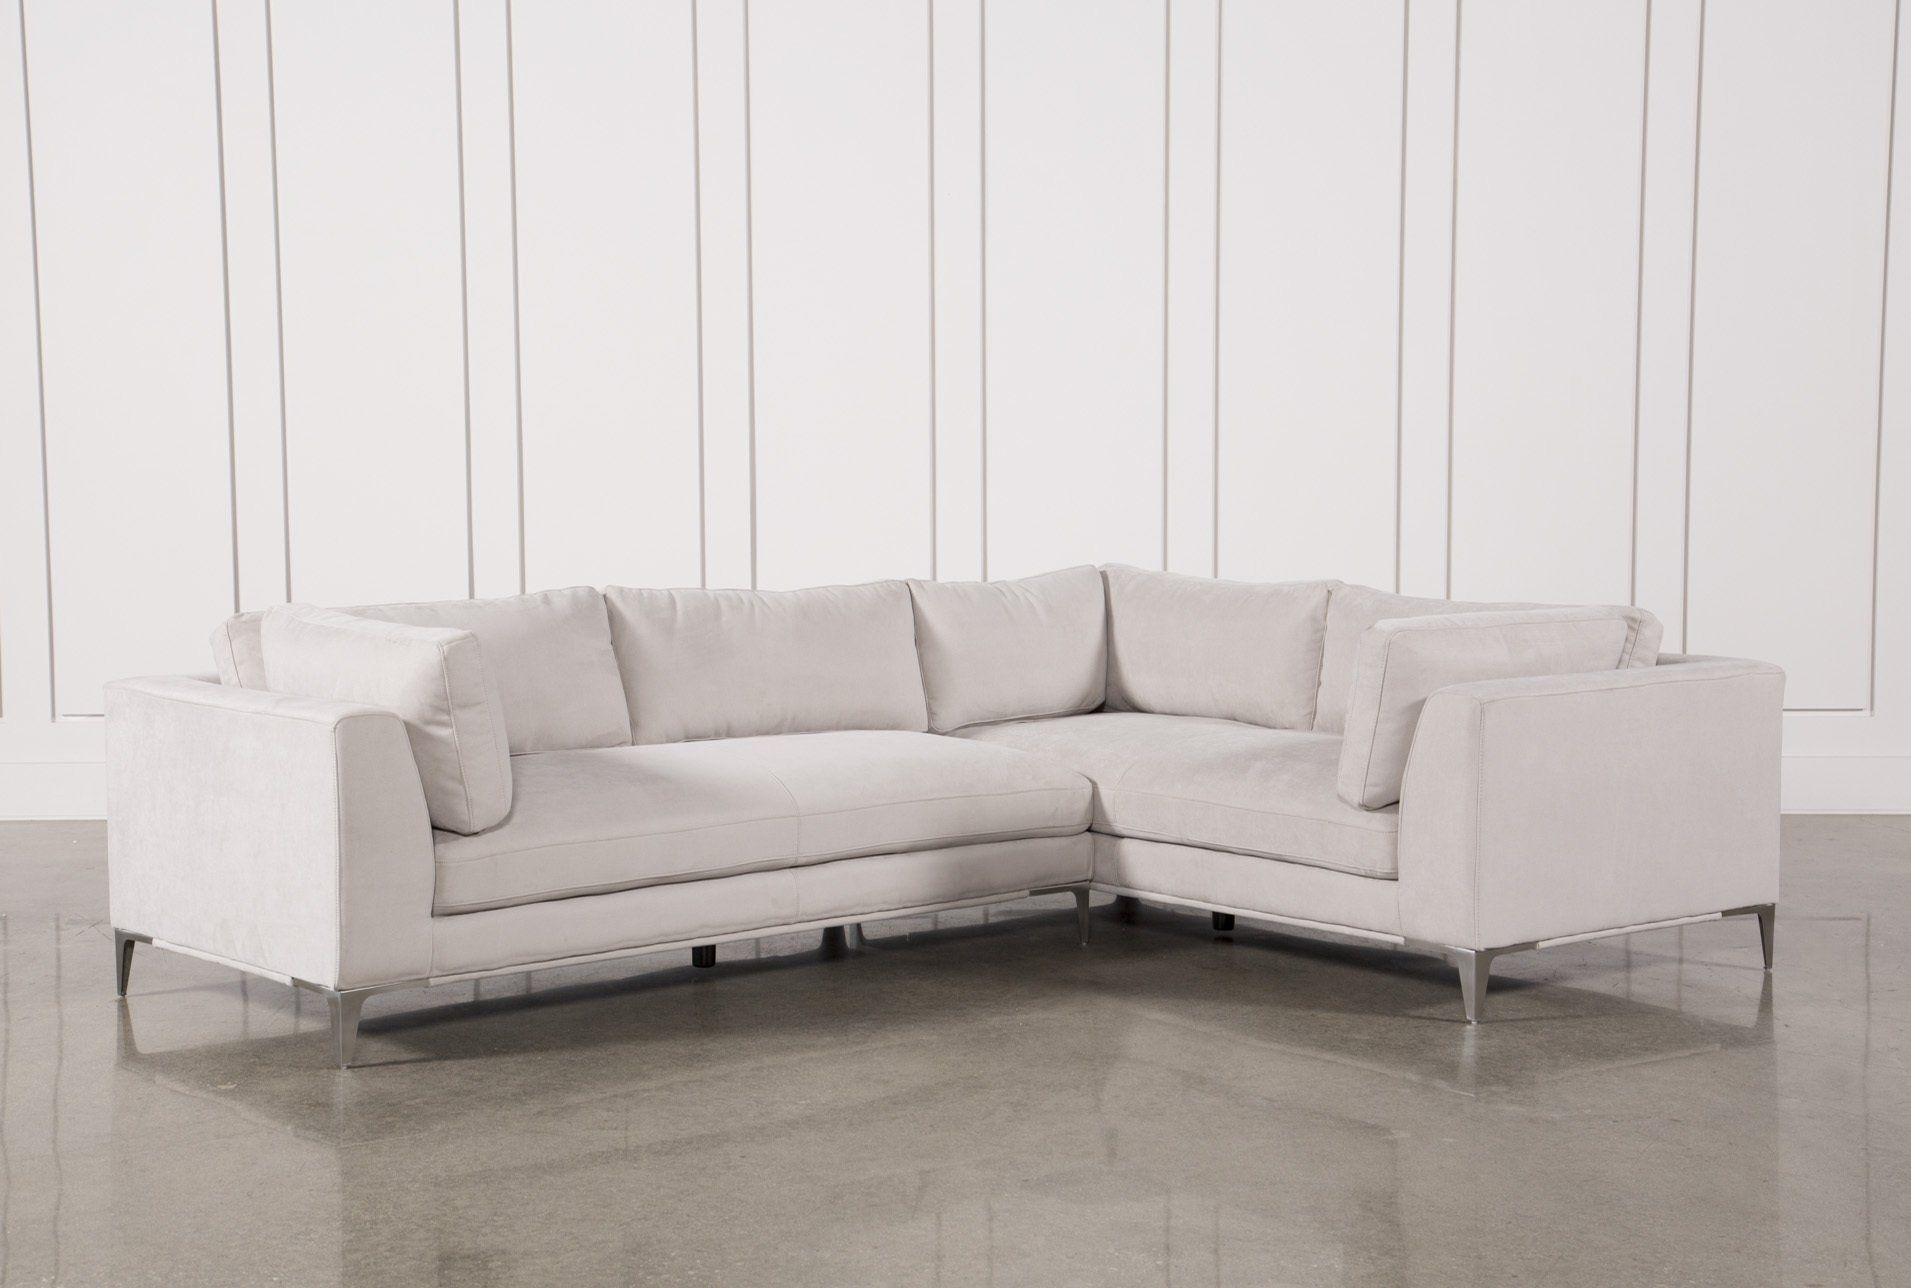 Cosmos Grey 2 Piece Sectional W/laf Chaise | Quilling | Pinterest With Cosmos Grey 2 Piece Sectionals With Raf Chaise (Image 6 of 25)